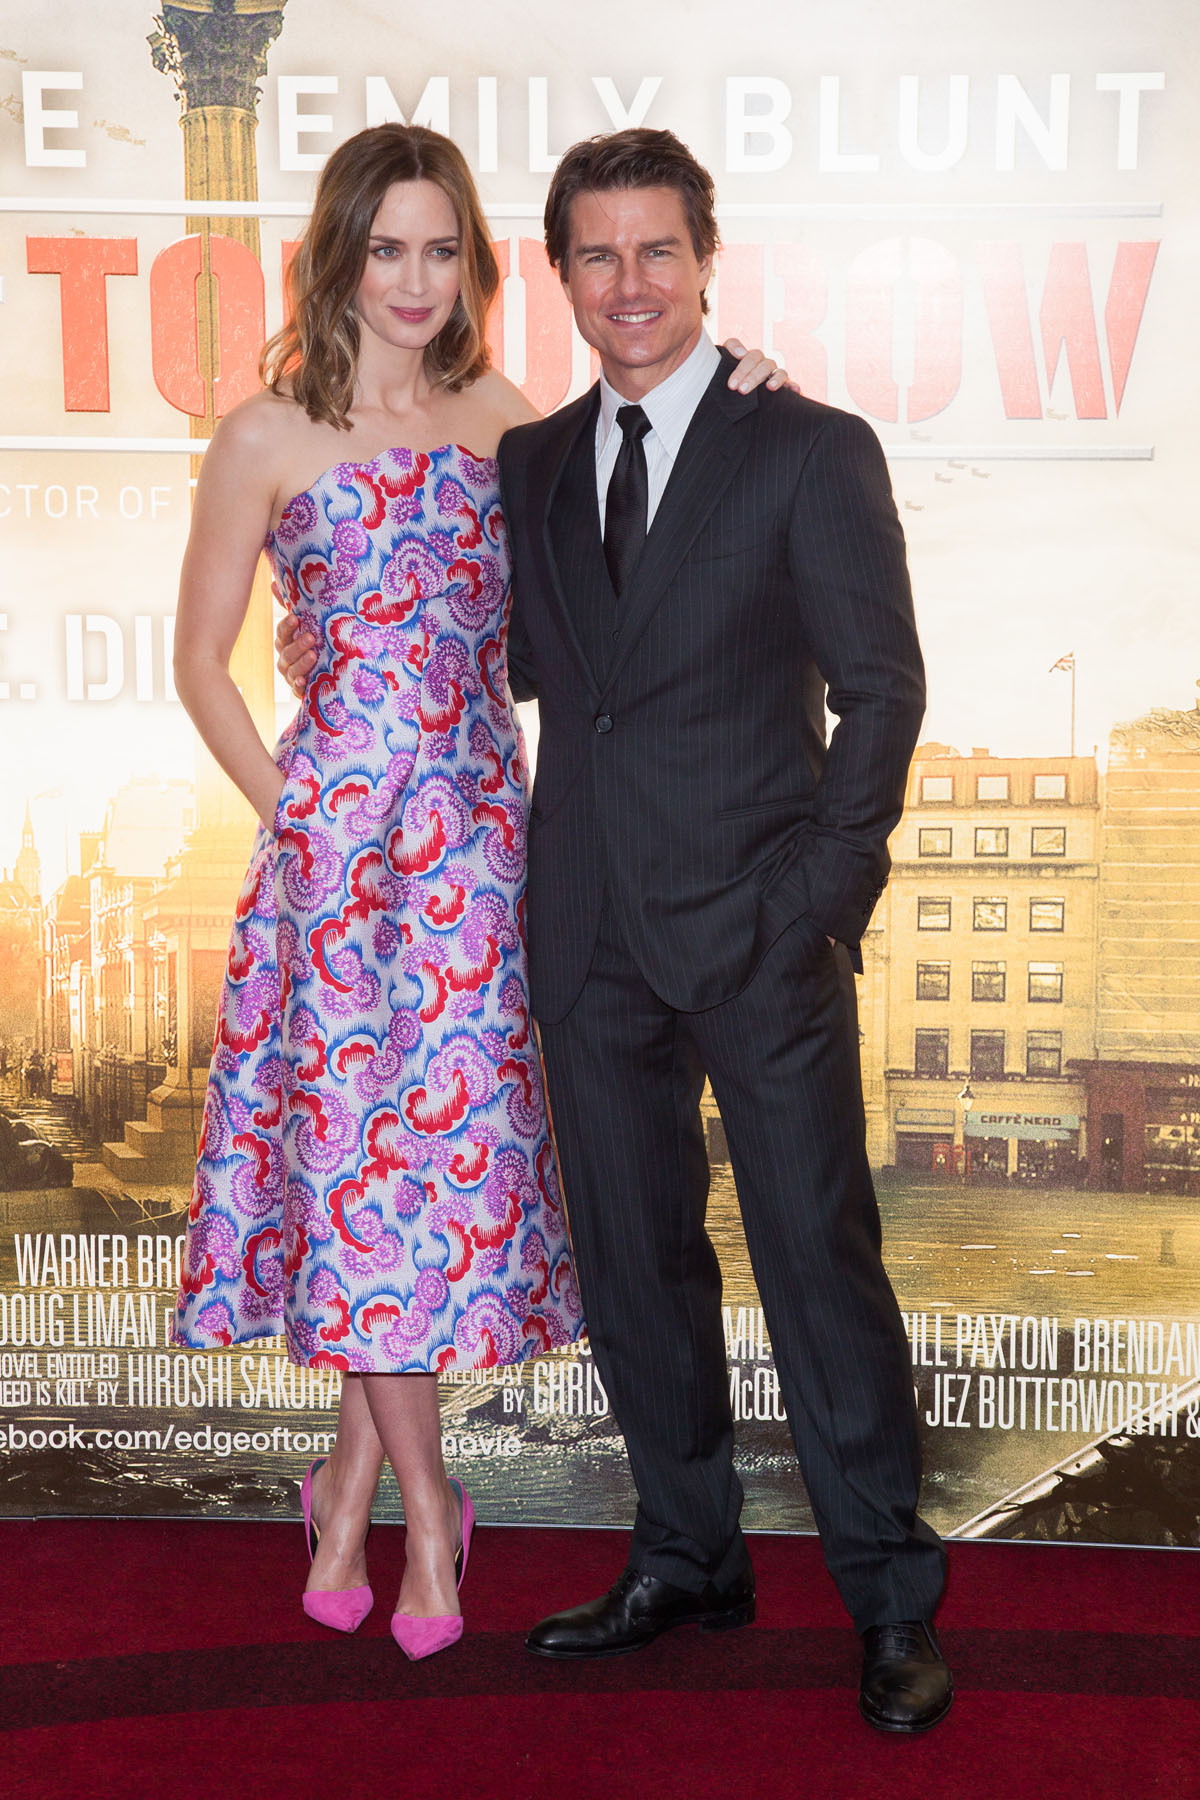 EOT PR London 298 New Pictures from the Edge of Tomorrow Red Carpet Event Plus a New 13 Minute Video